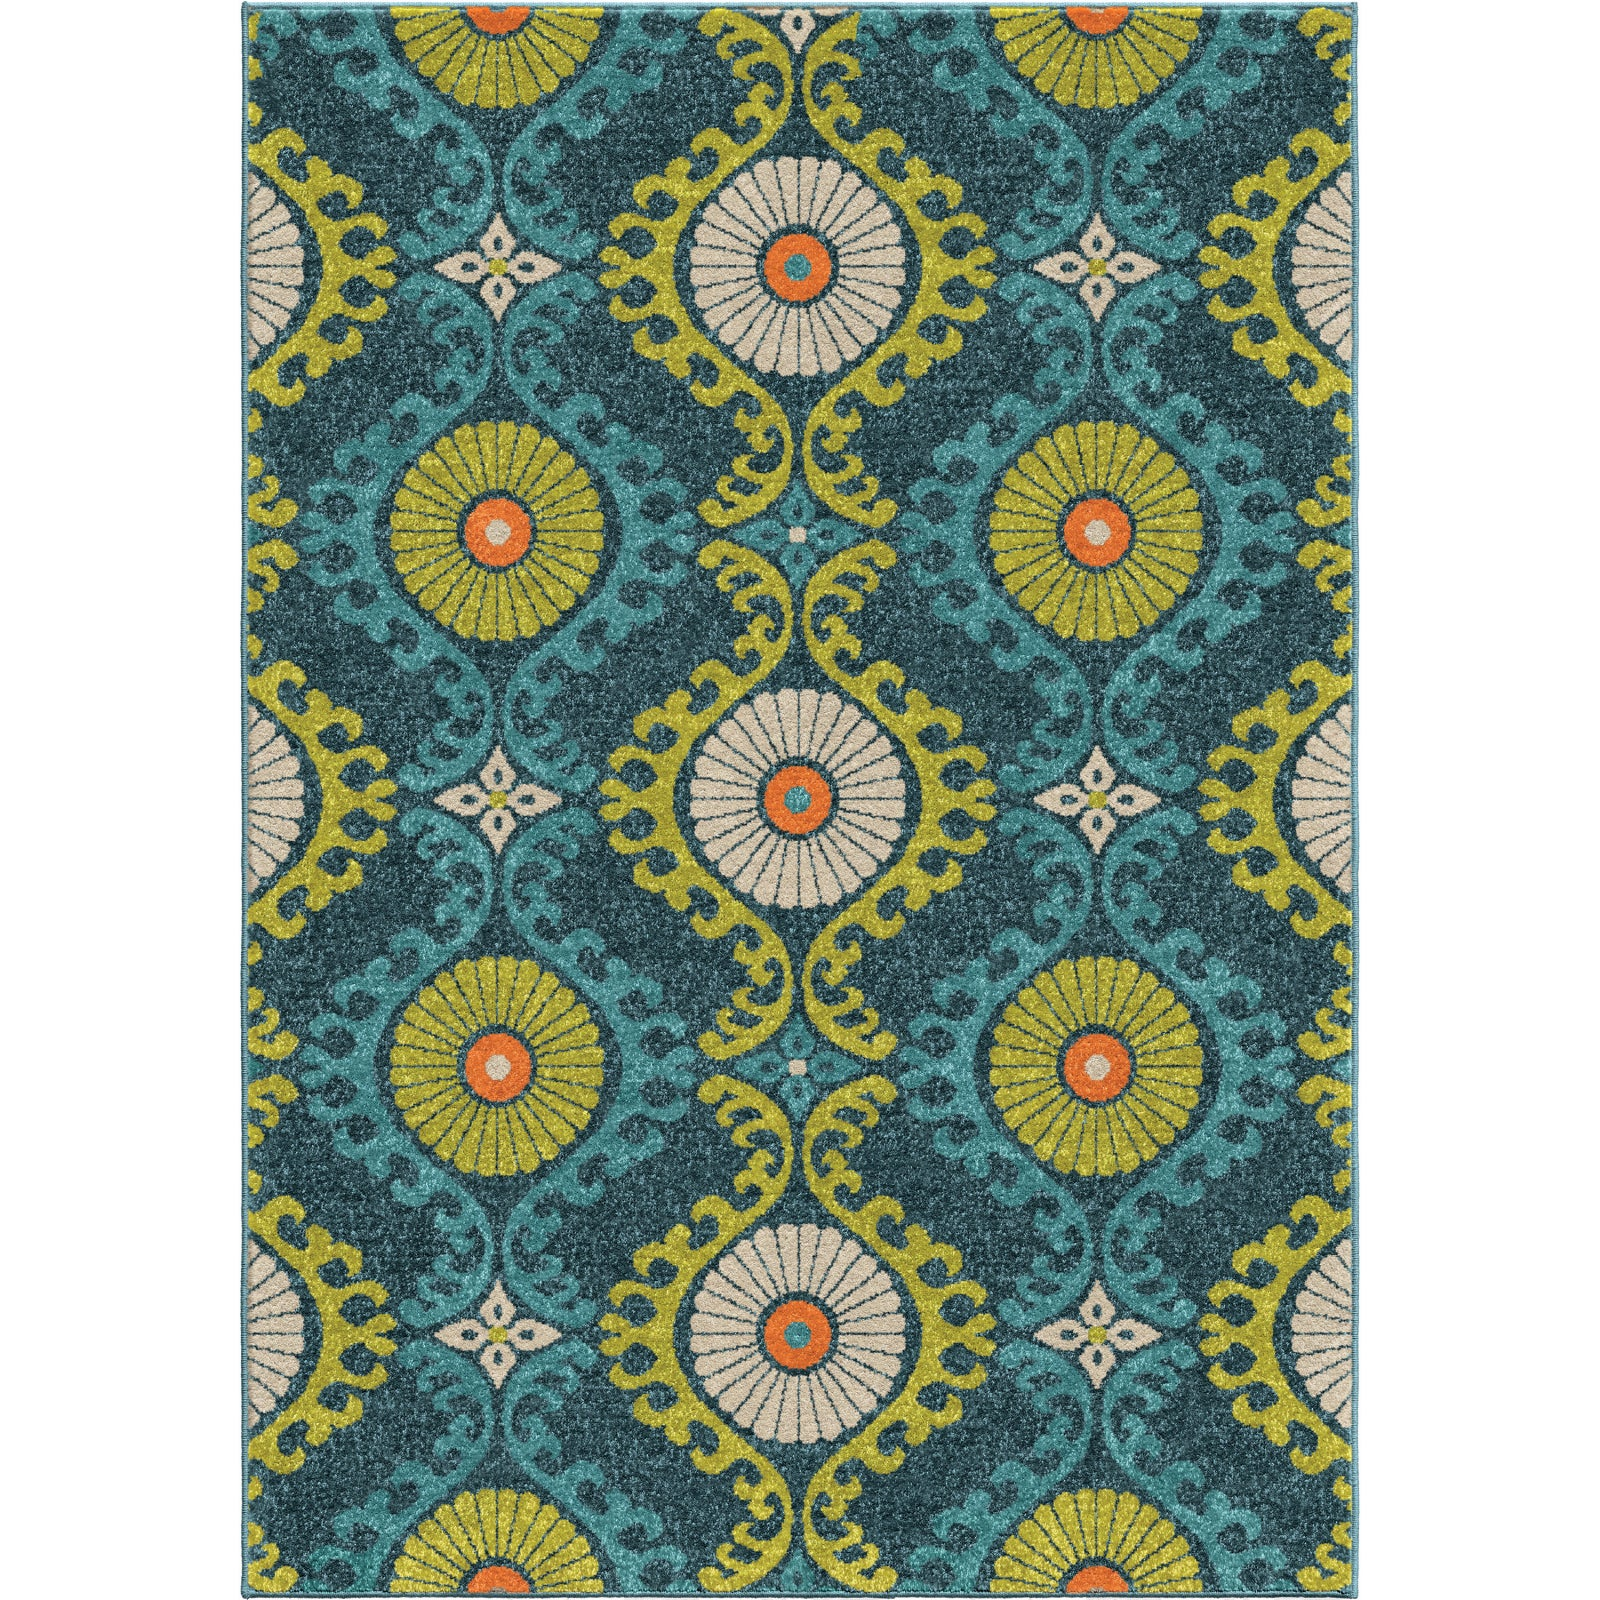 Orian Rugs Promise Floating Floral Blue Area Rug main image